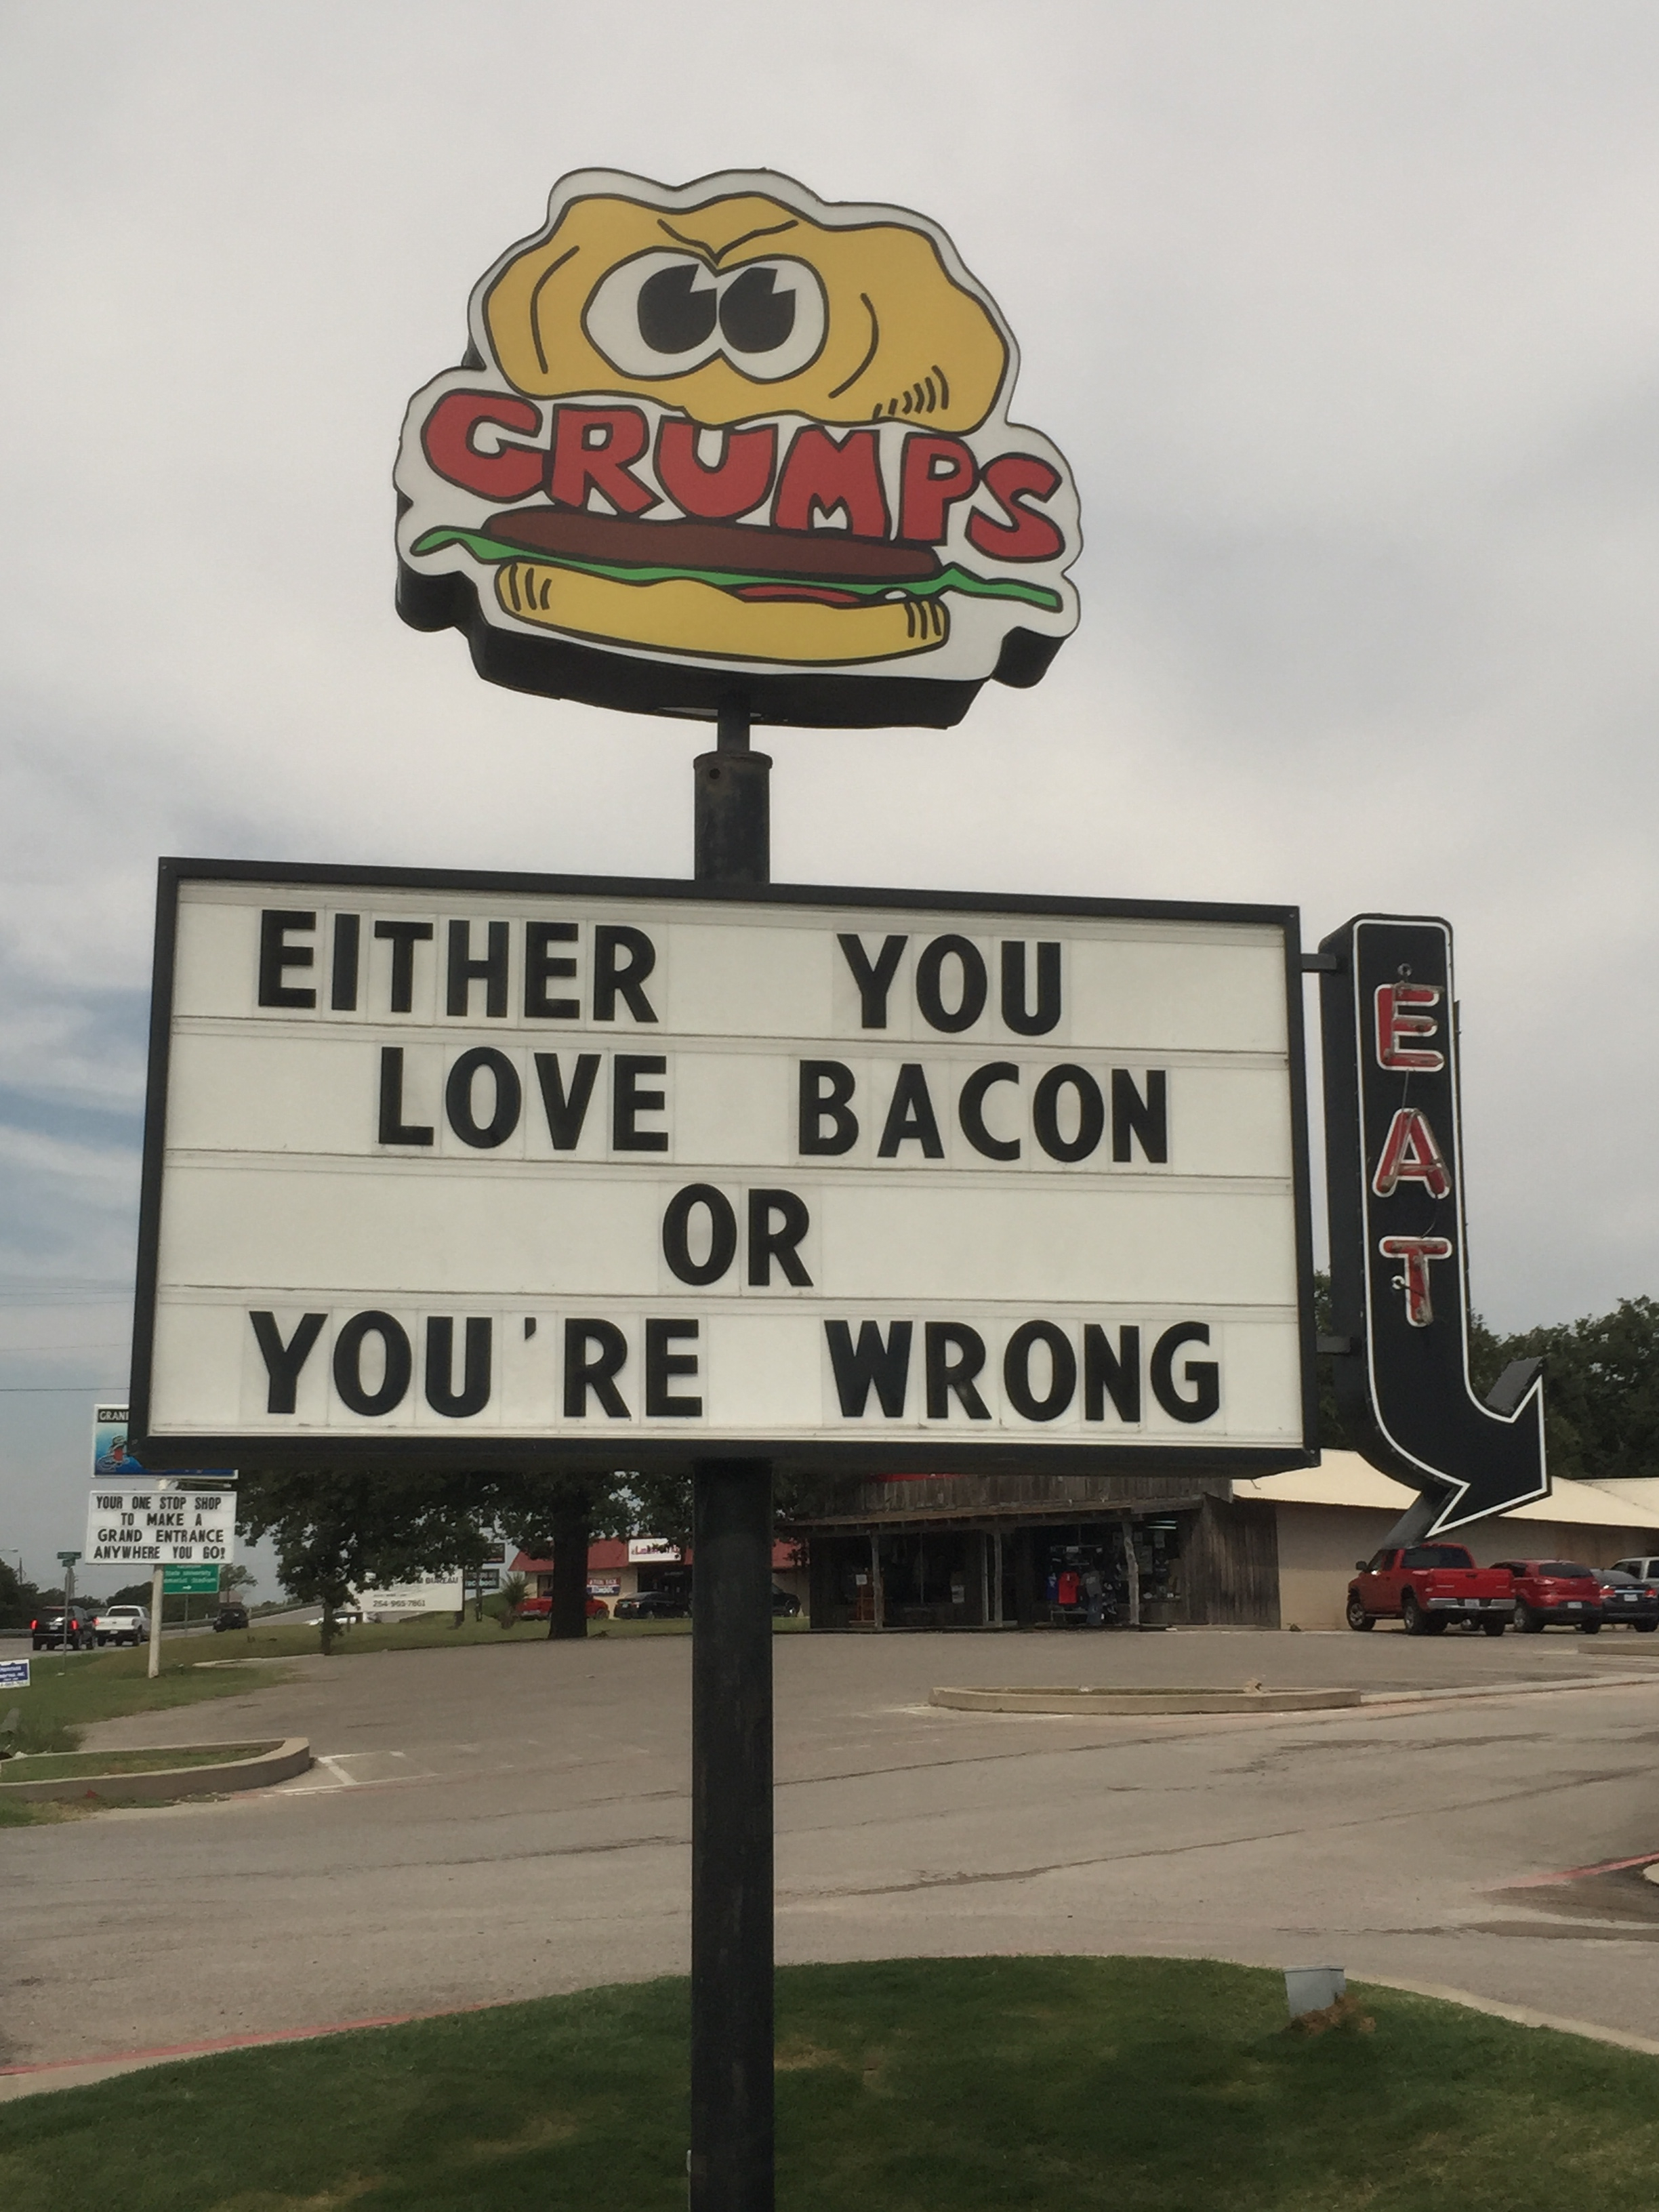 Do YOU love bacon